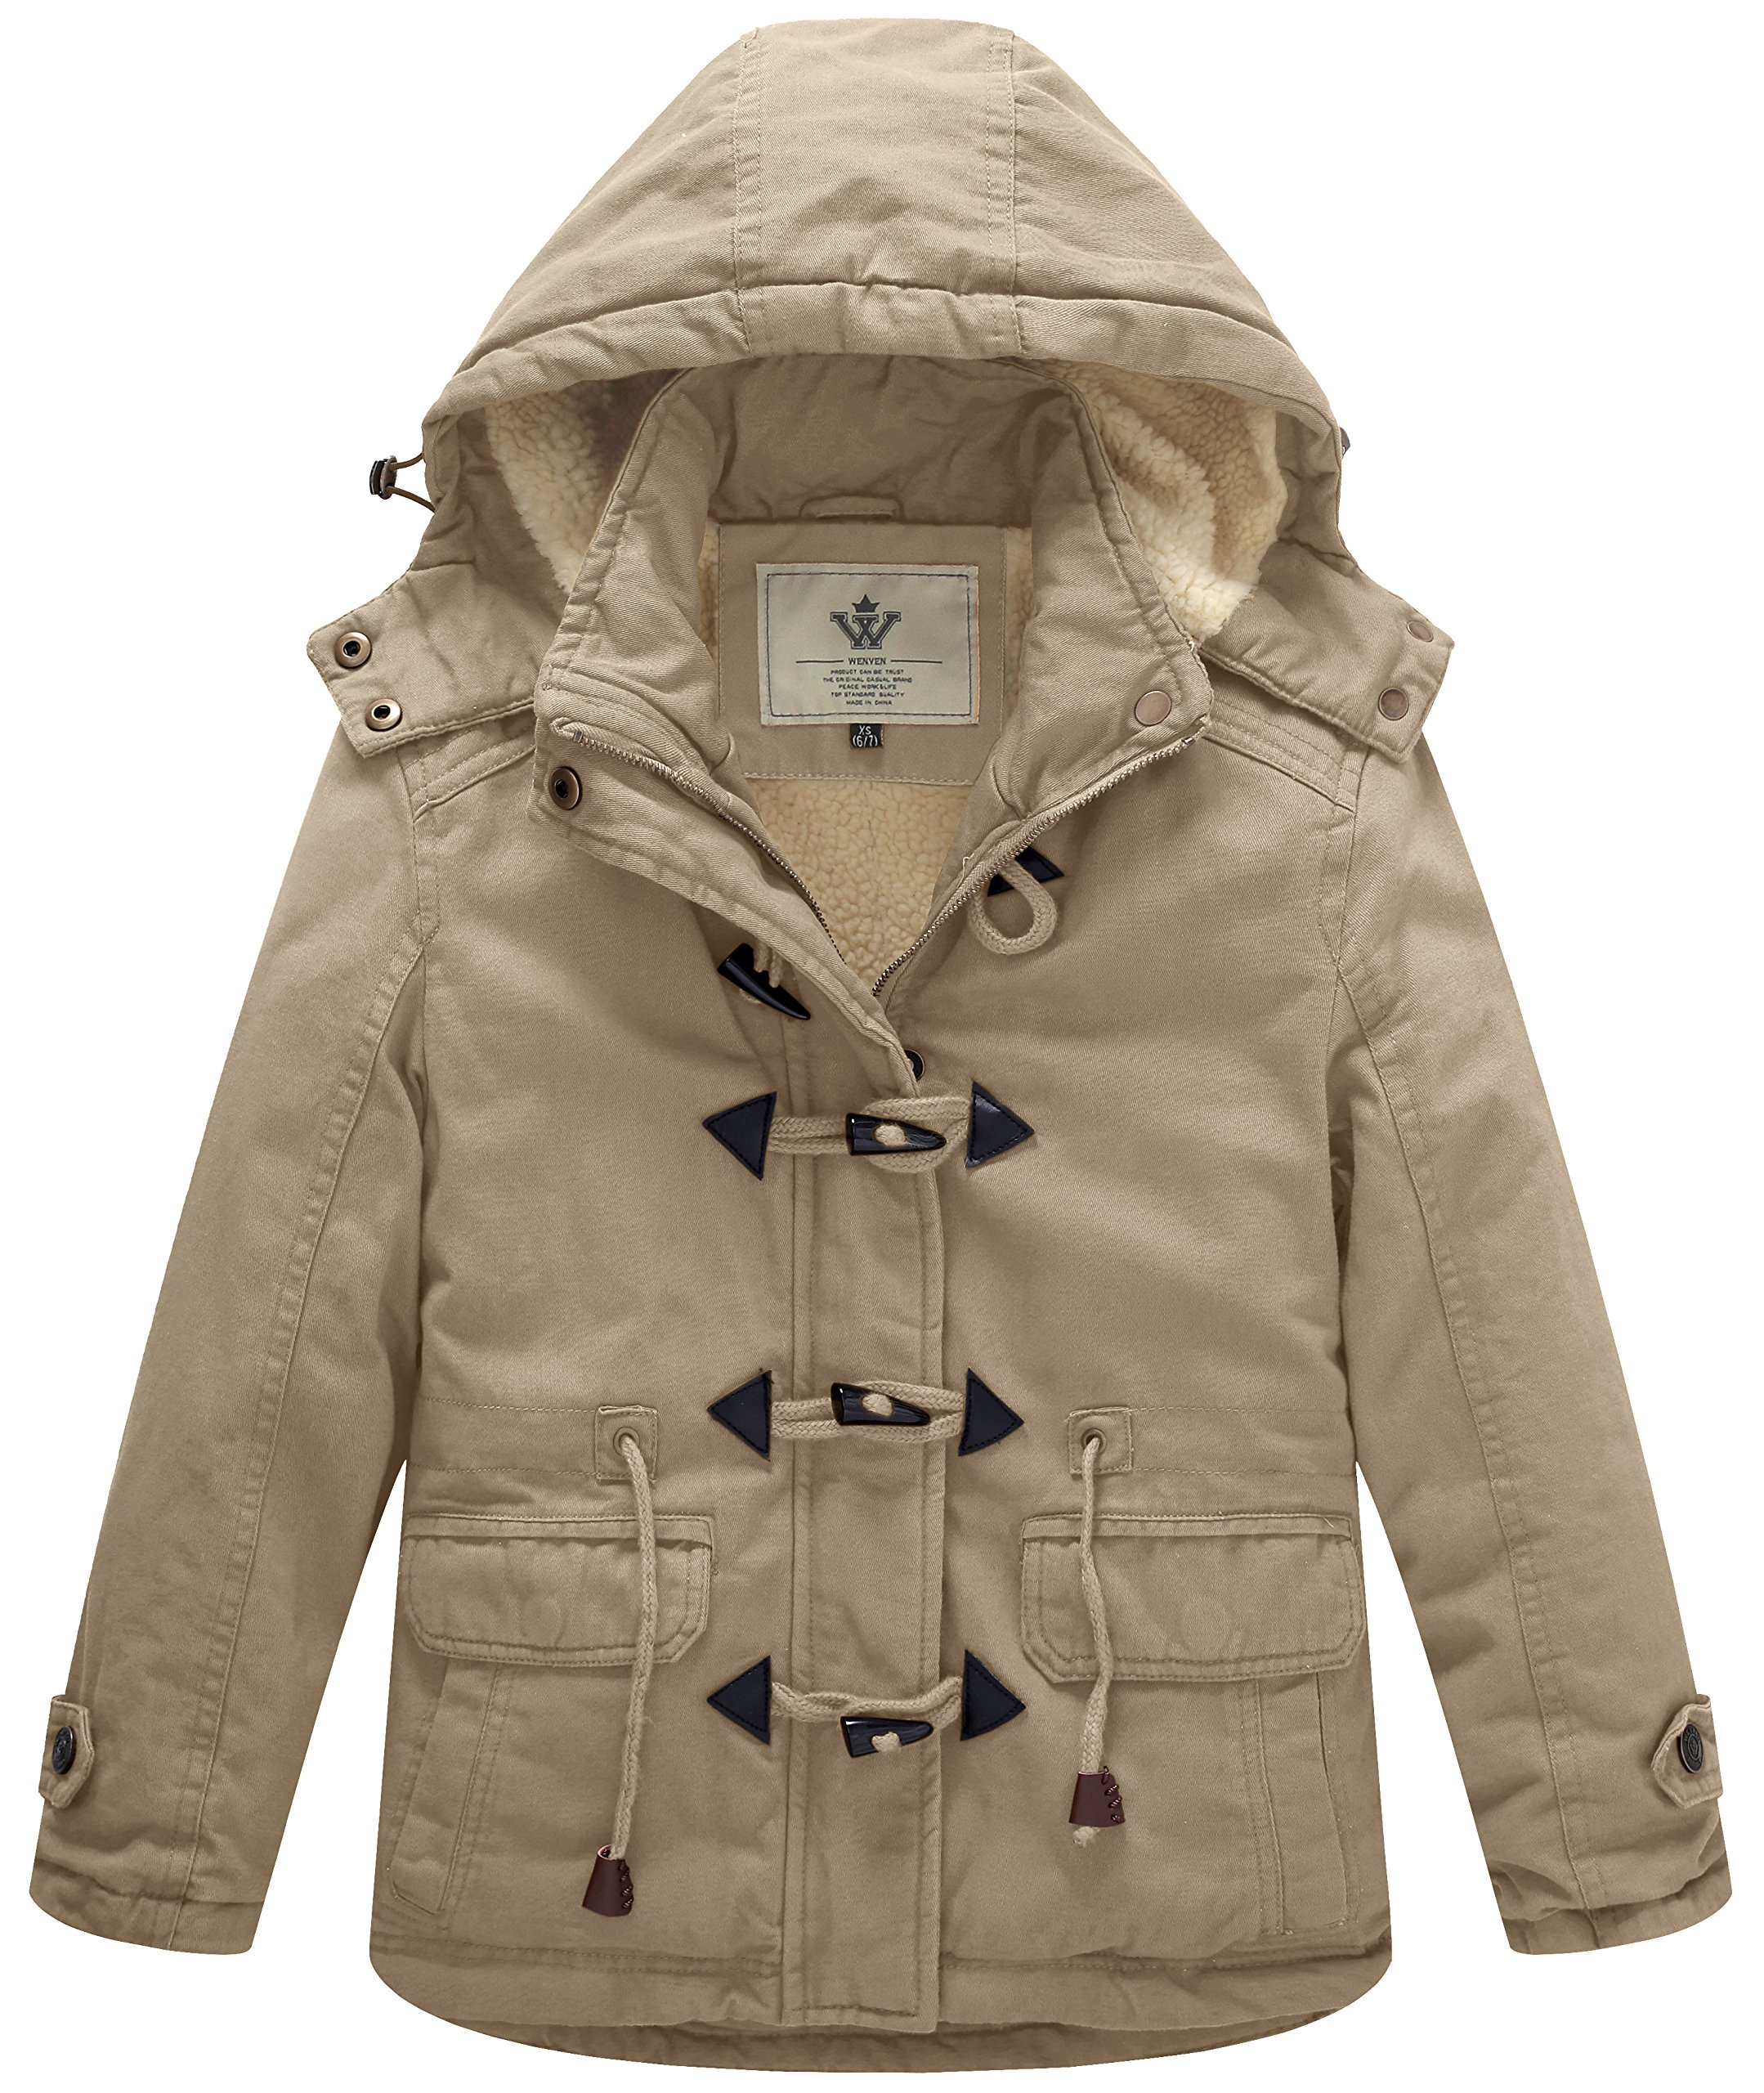 WenVen Girl's Thicken Jacket Cotton Coat with Removable Hood, Khaki, 6-7Y